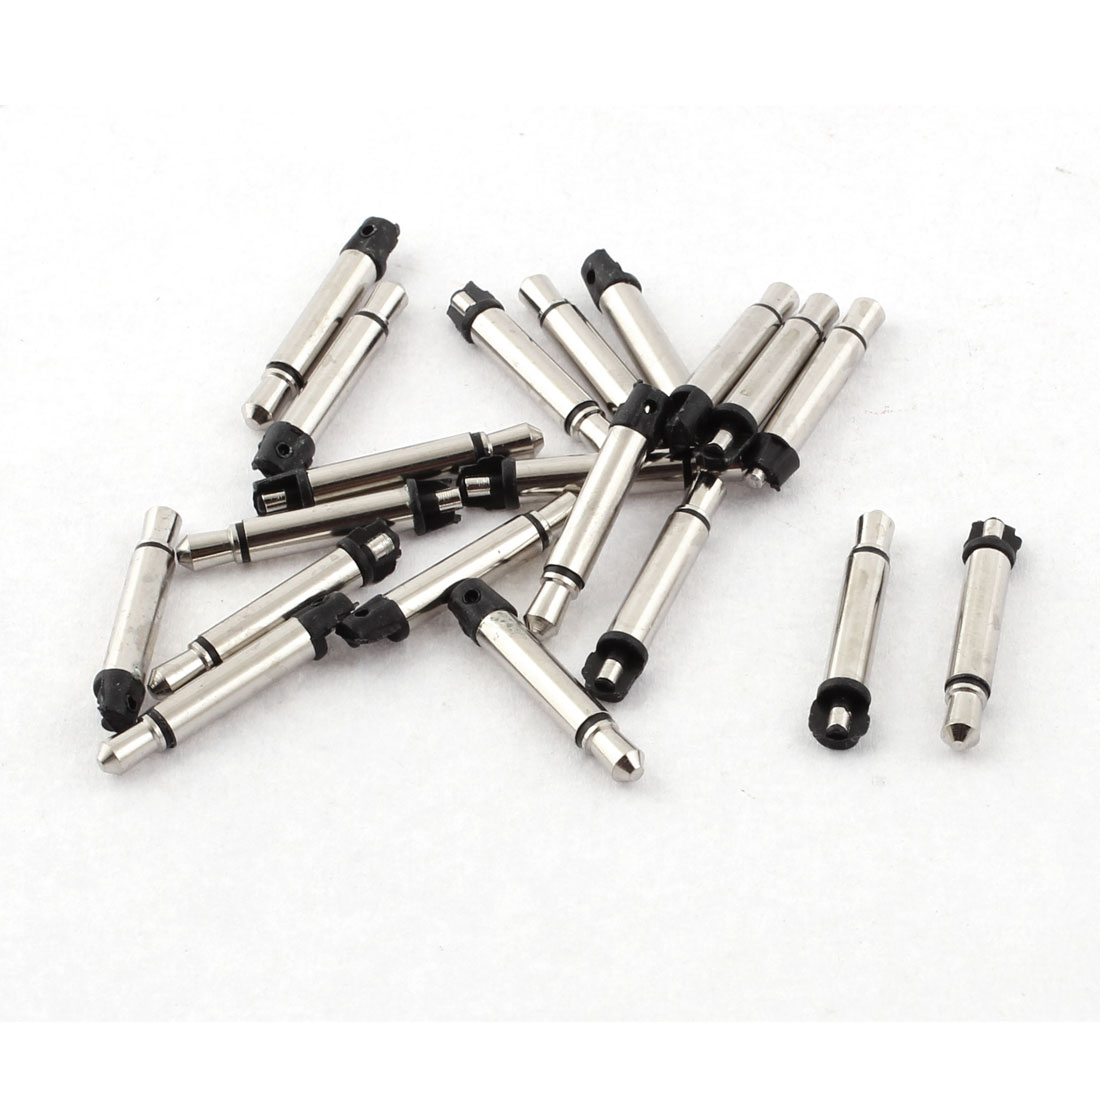 Mono Audio Earphone 3.5mm Male Jack Soldering Connector Black 20pcs